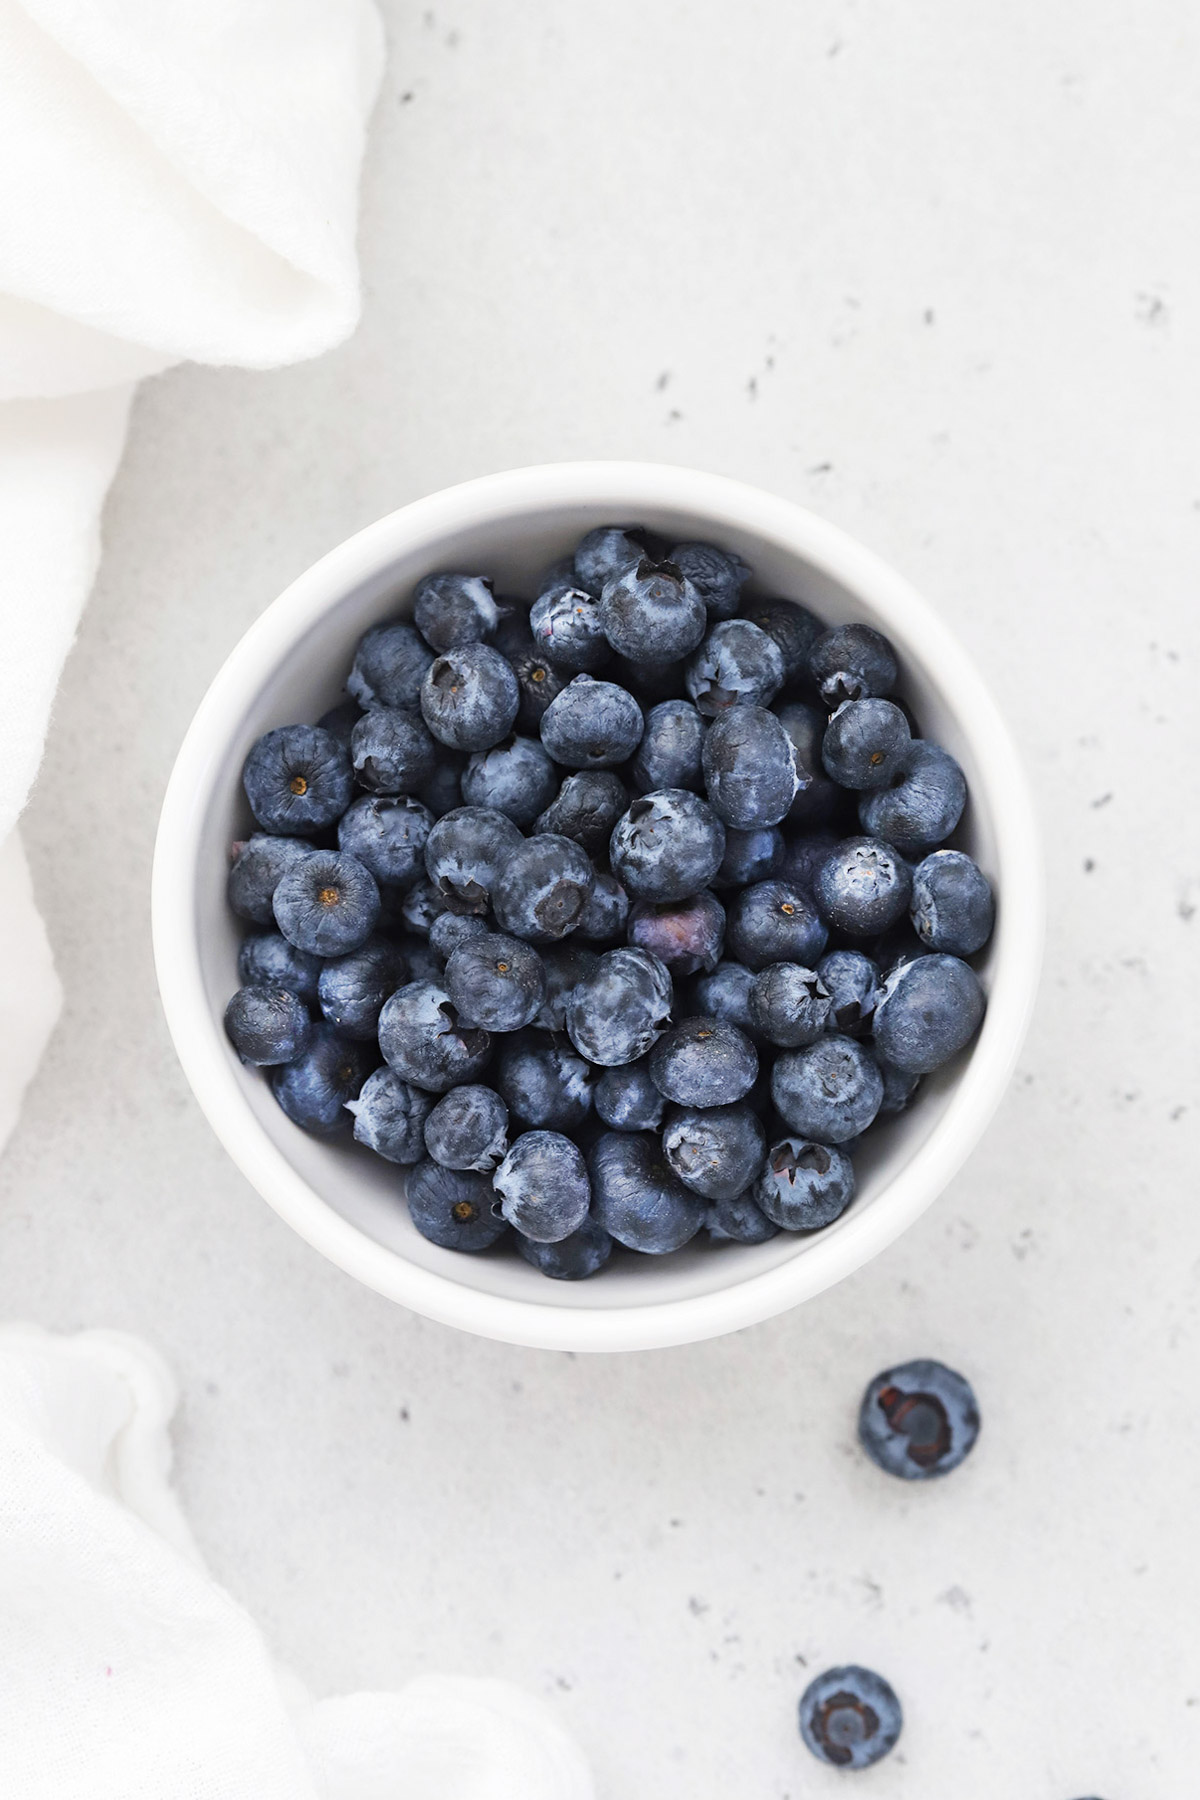 Overhead view of a small bowl of fresh, ripe blueberries on a white background